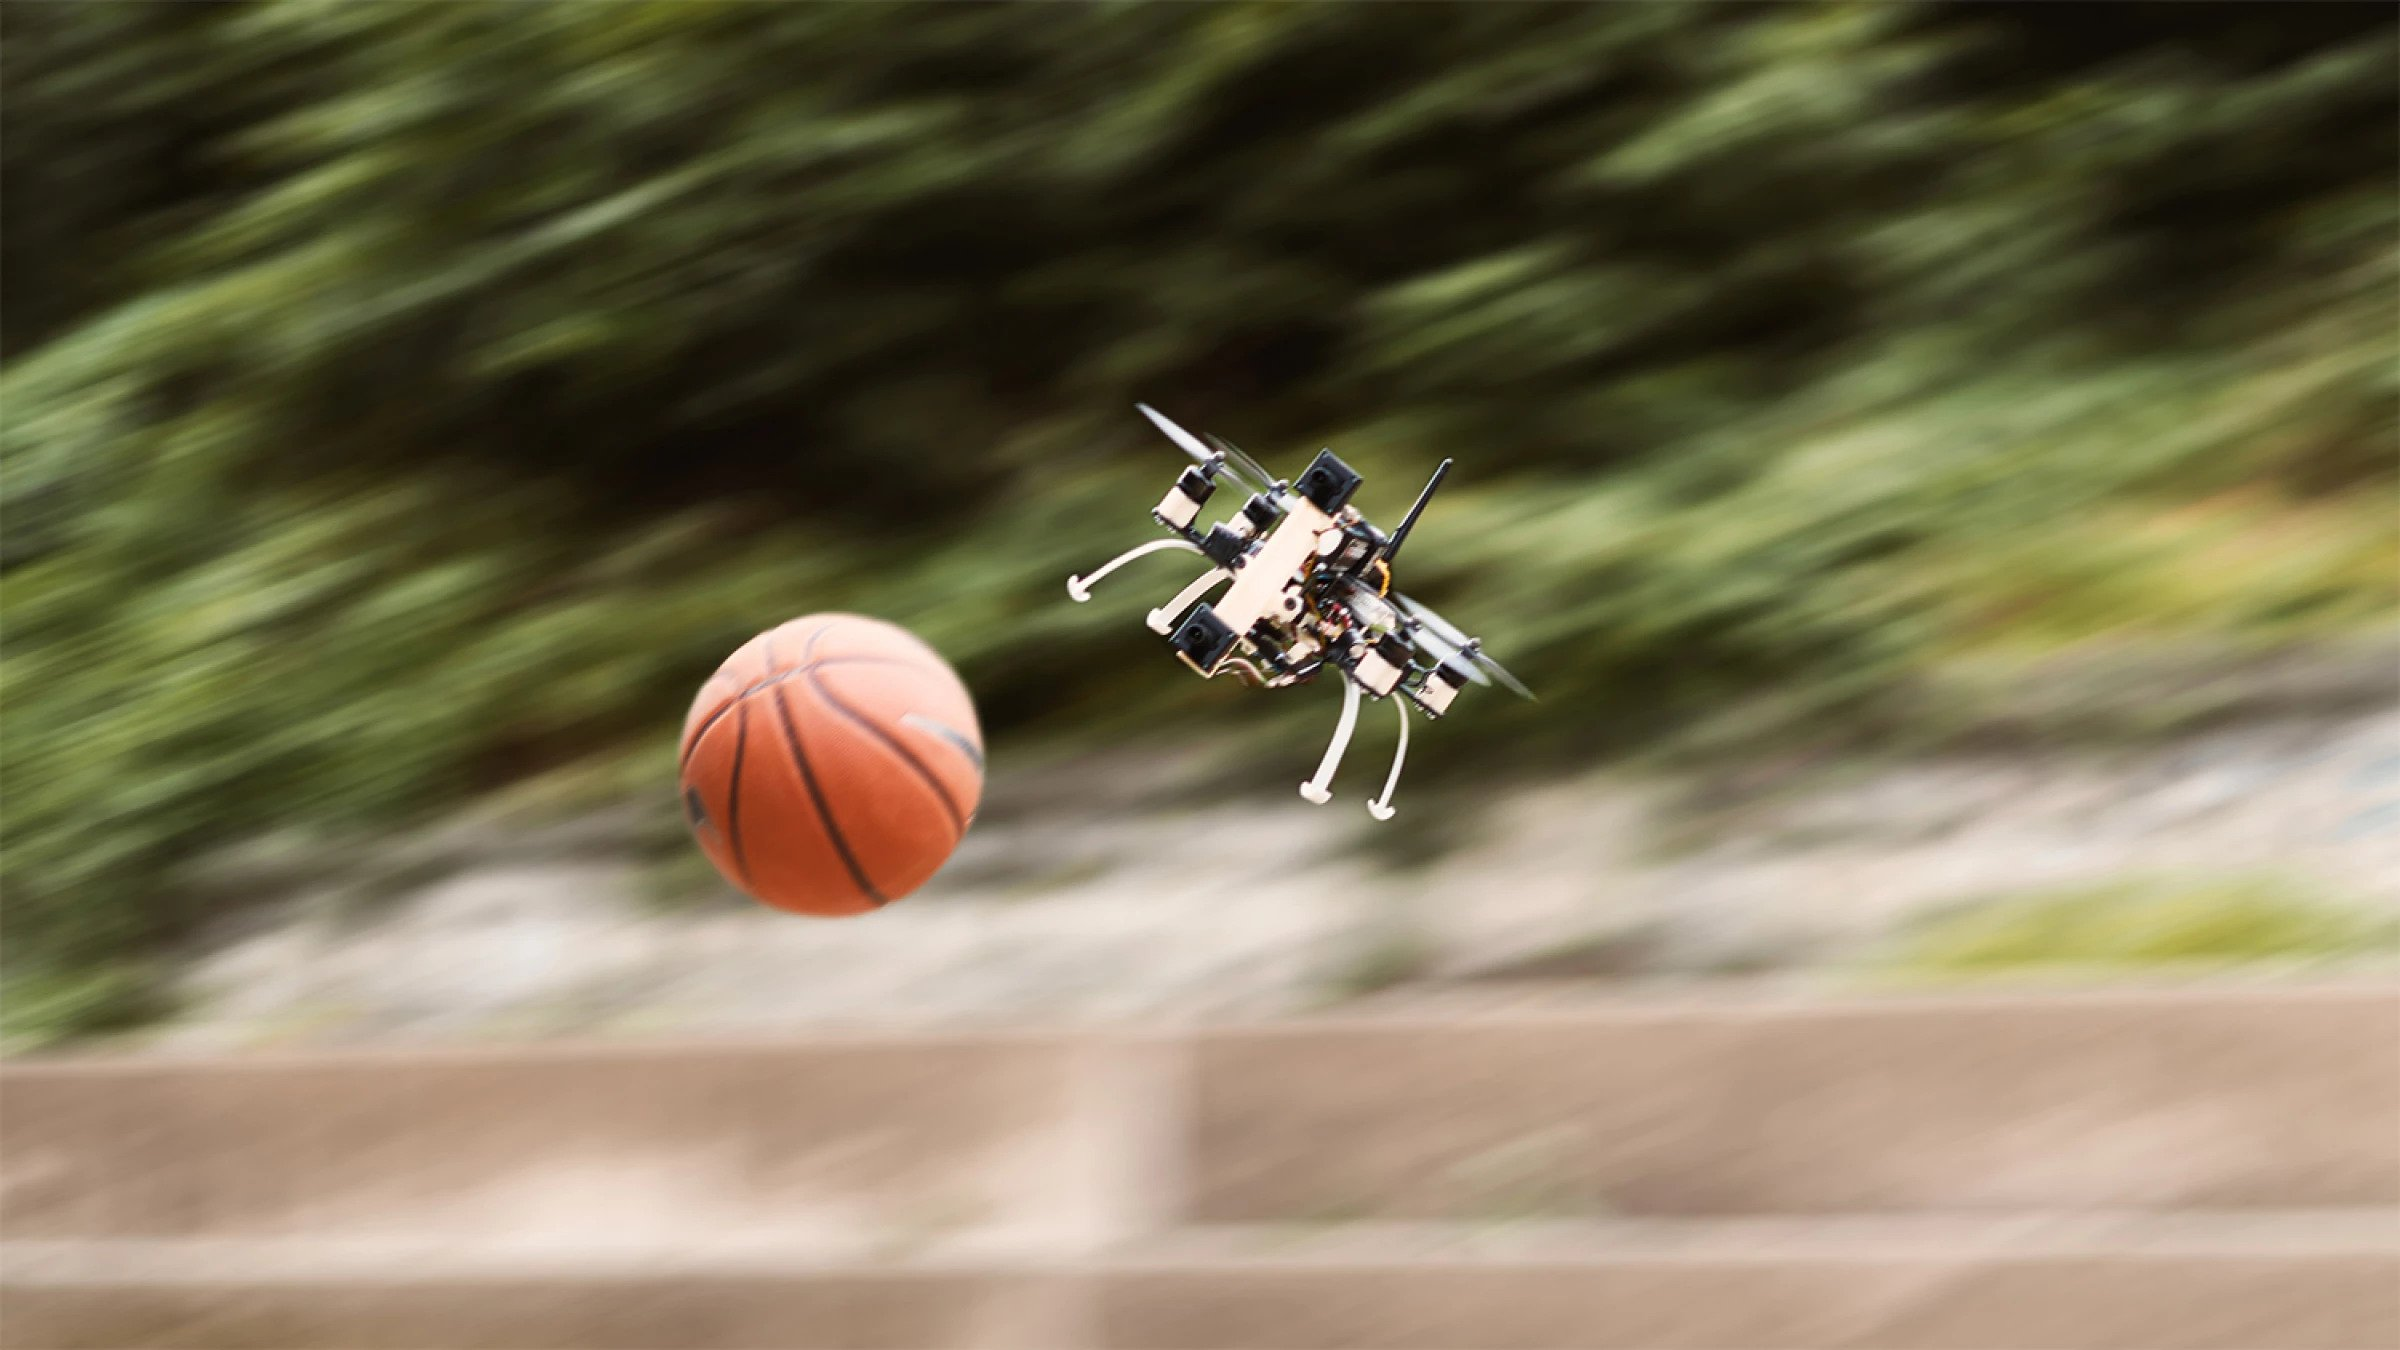 Drones That Can Play Dodgeball? Sweet!